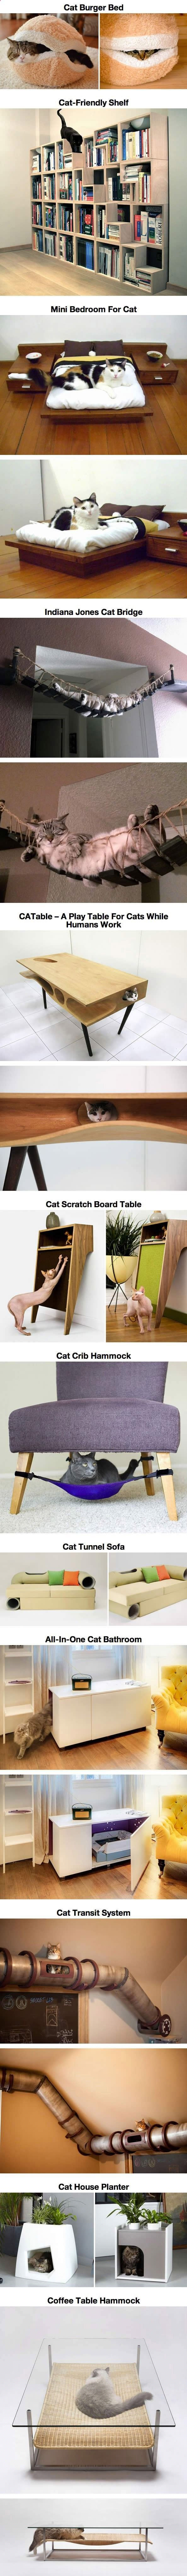 Cats Toys Ideas - Ein Paradies für Katzen Teil 1 | Webfail - Fail Bilder und Fail Videos - Ideal toys for small cats